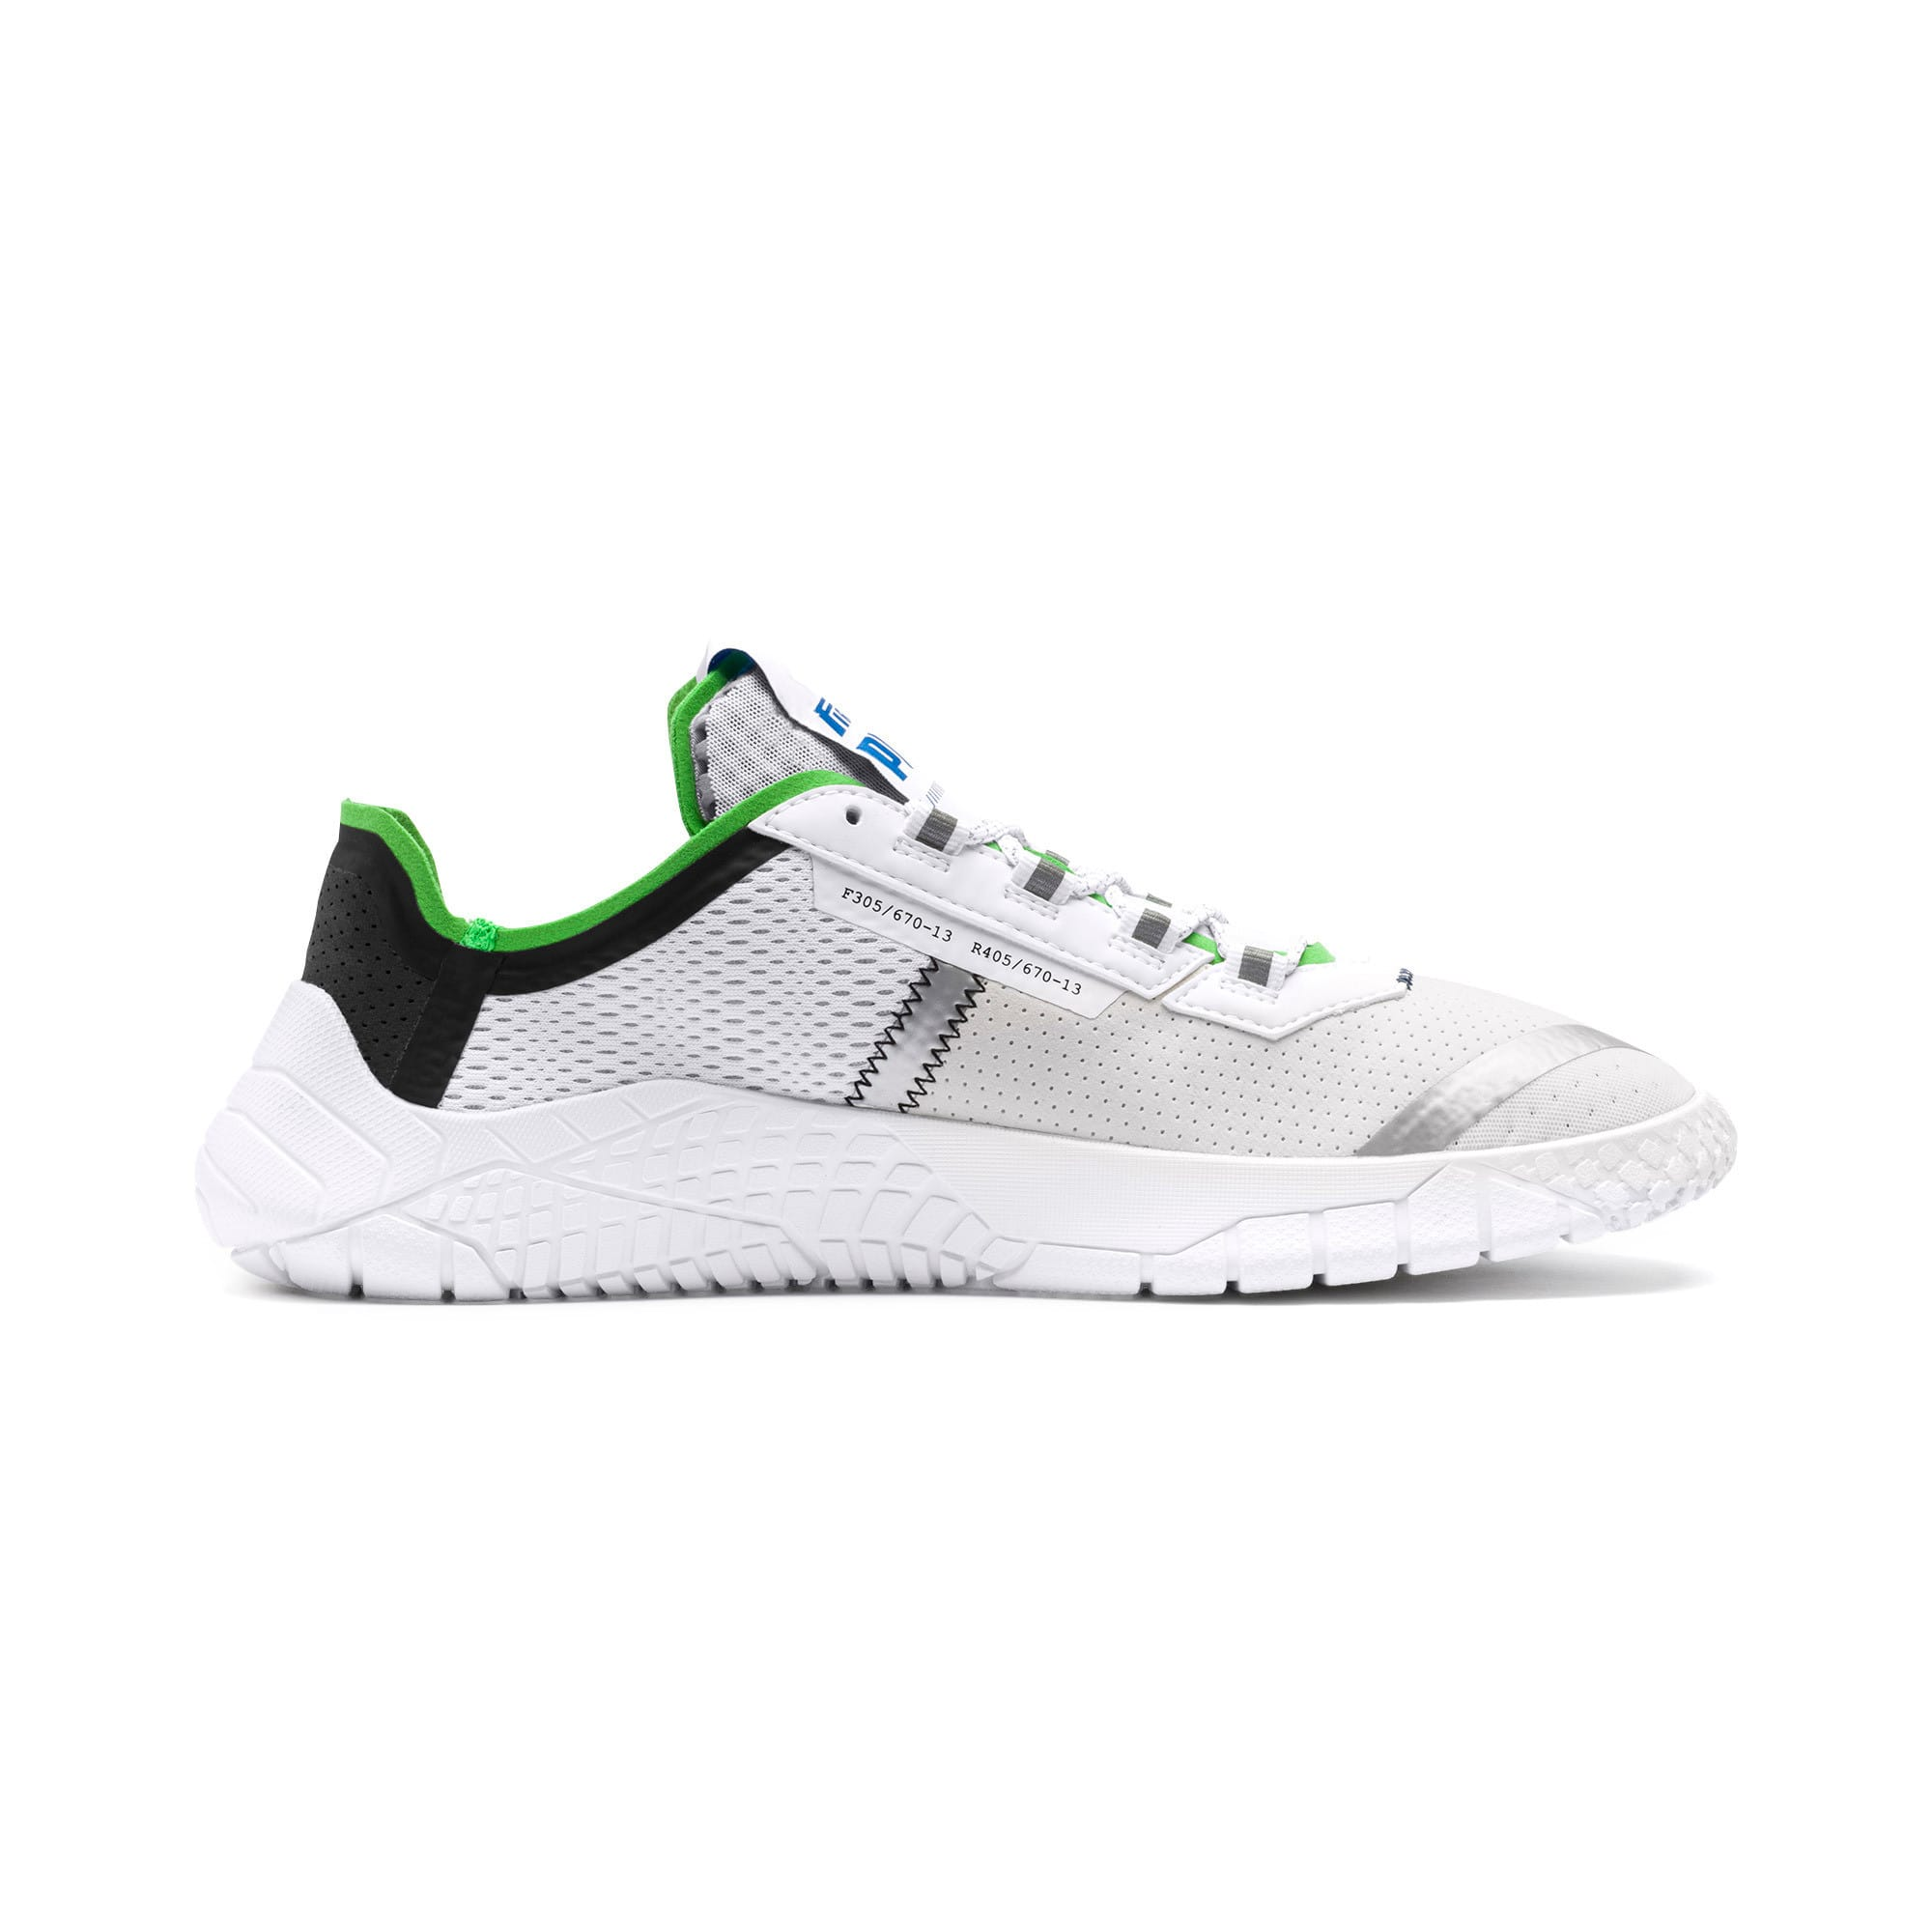 Thumbnail 6 of Pirelli Replicat-X Trainers, White-Black-Classic Green, medium